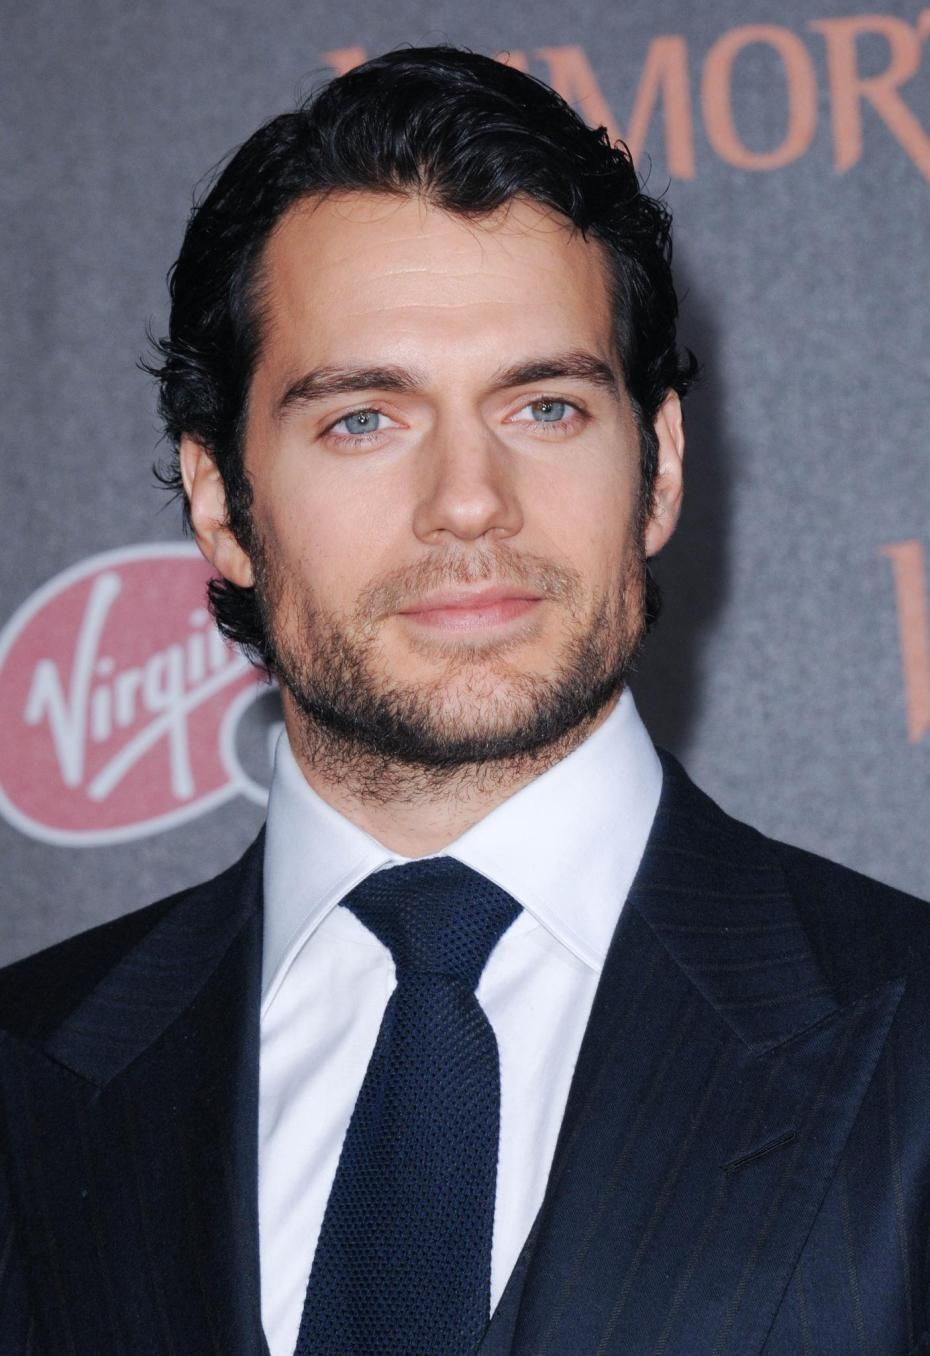 Forum on this topic: Emily Stevens (actress), henry-cavill-born-1983/